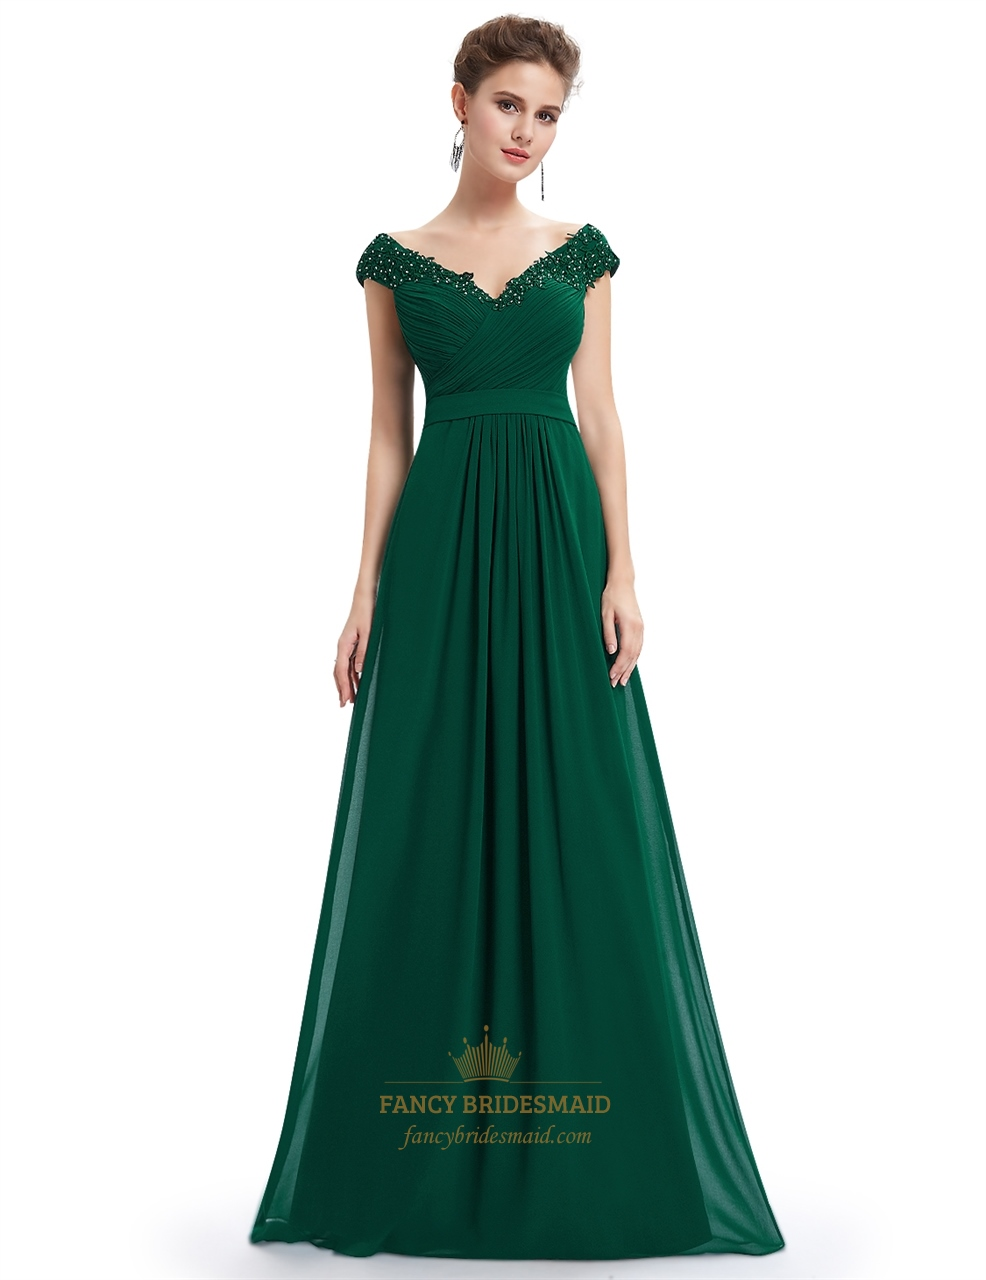 Emerald Green V Neck Bridesmaid Dresses With Beaded Lace